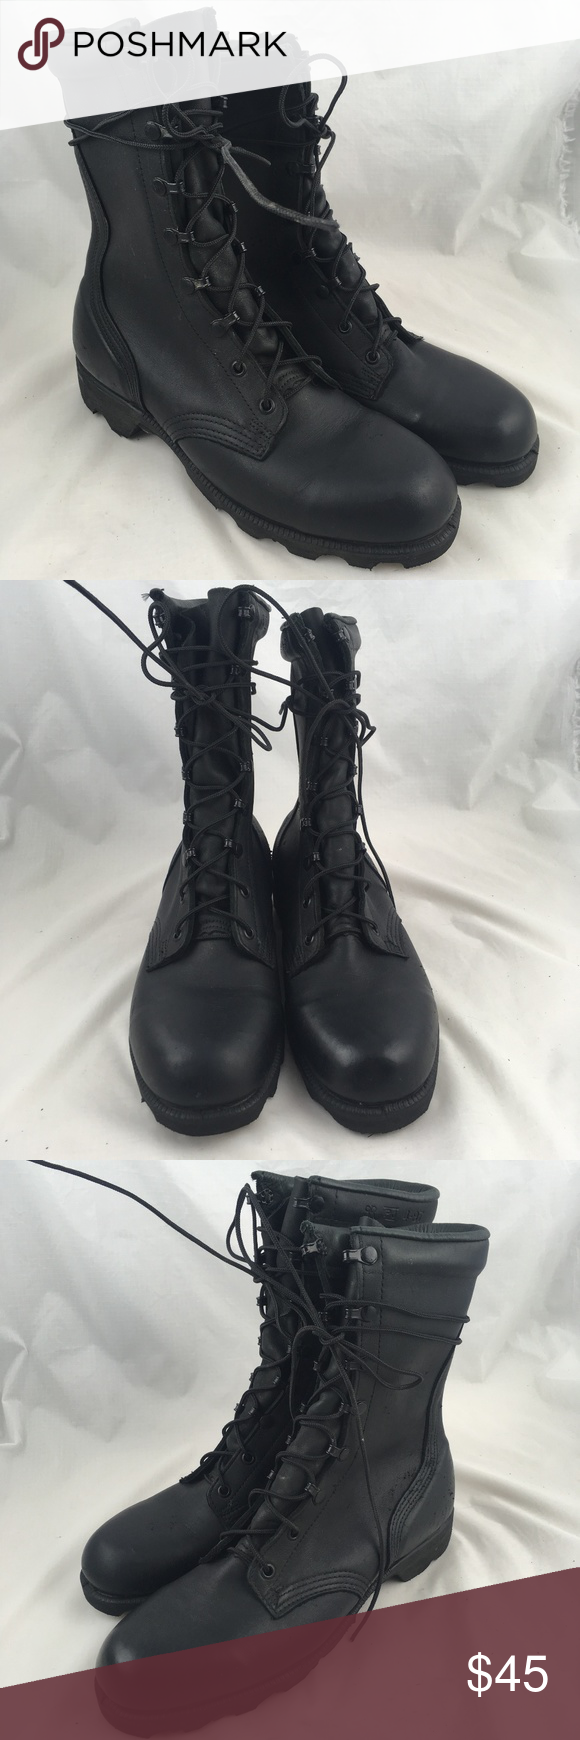 95dded24956f Military jump boots black leather combat lace up 9 Altama RO search men s  military boots